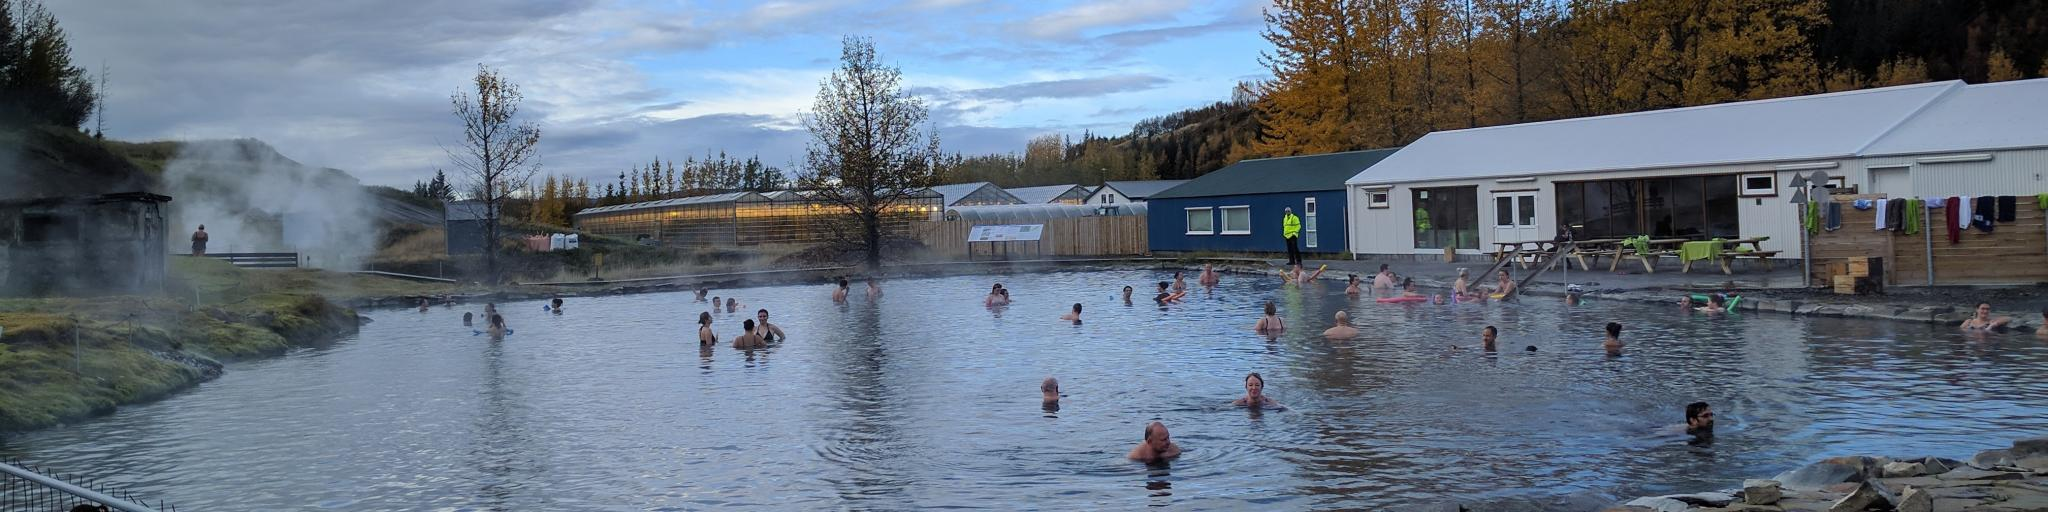 Steam rises from the hot springs at the Secret Lagoon